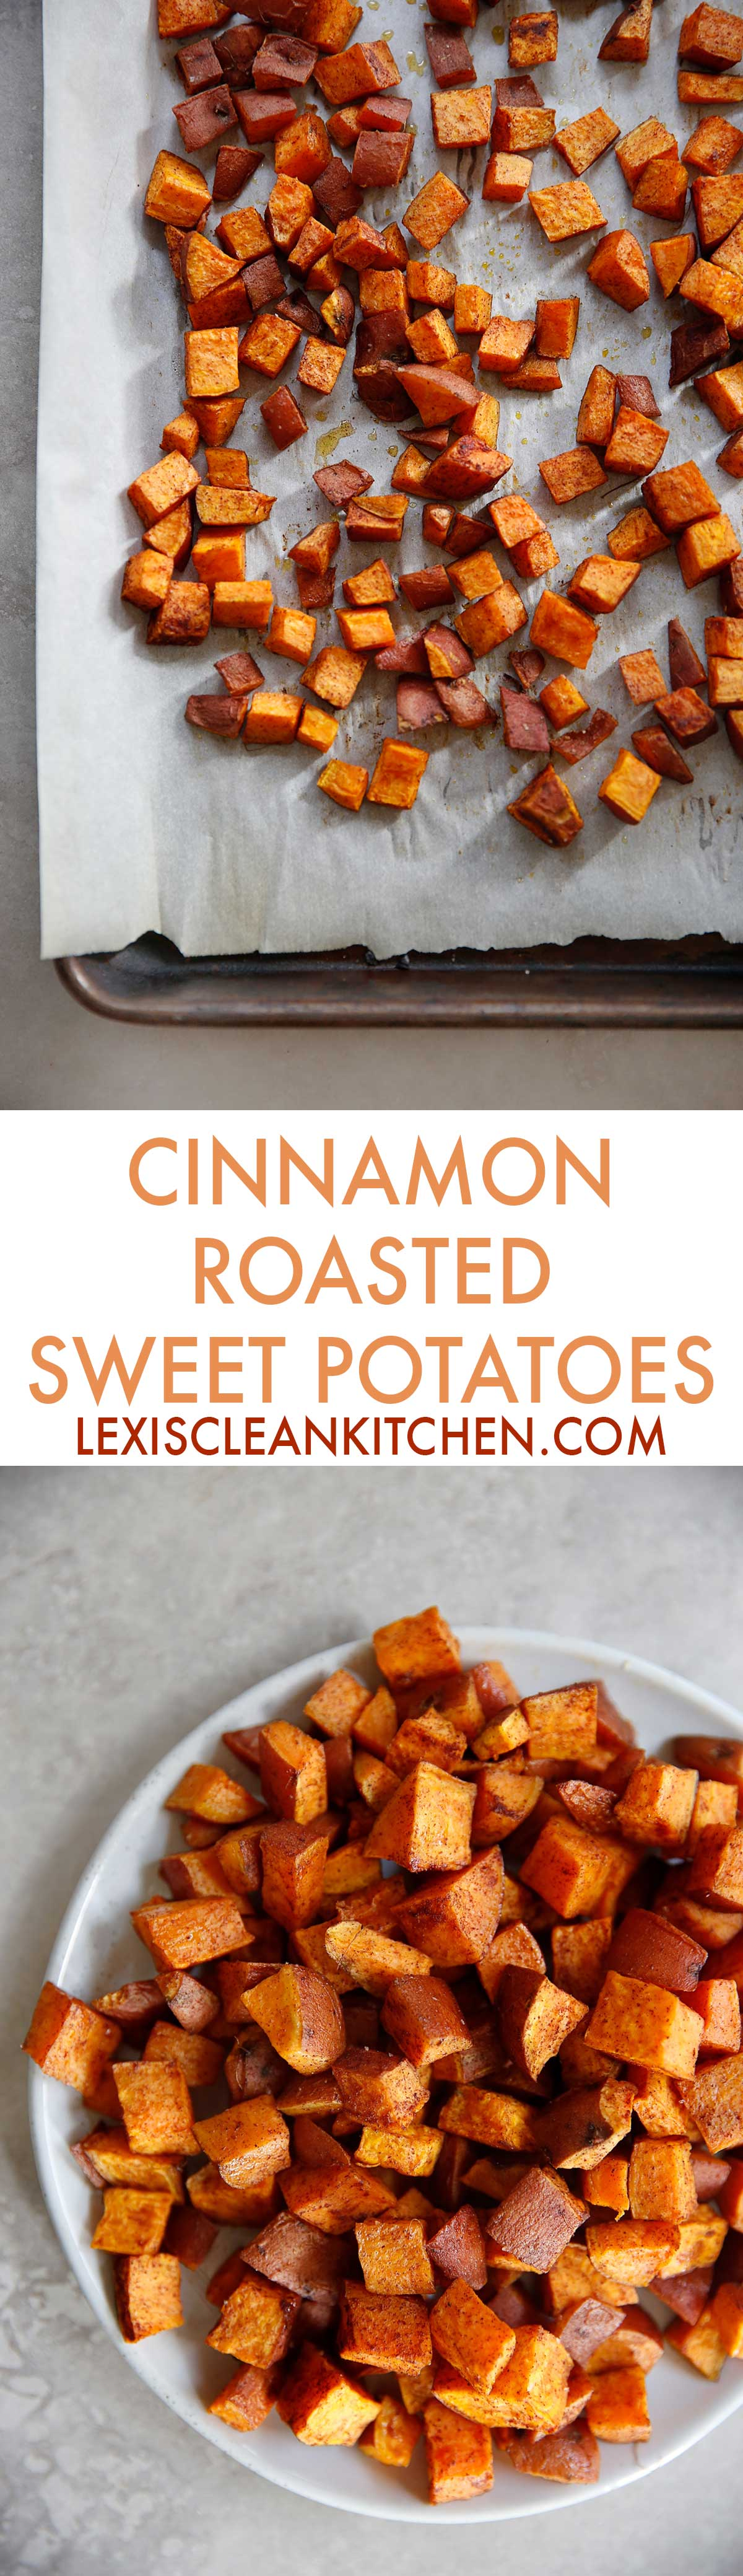 Cinnamon Roasted Sweet Potatoes | Lexi's Clean Kitchen